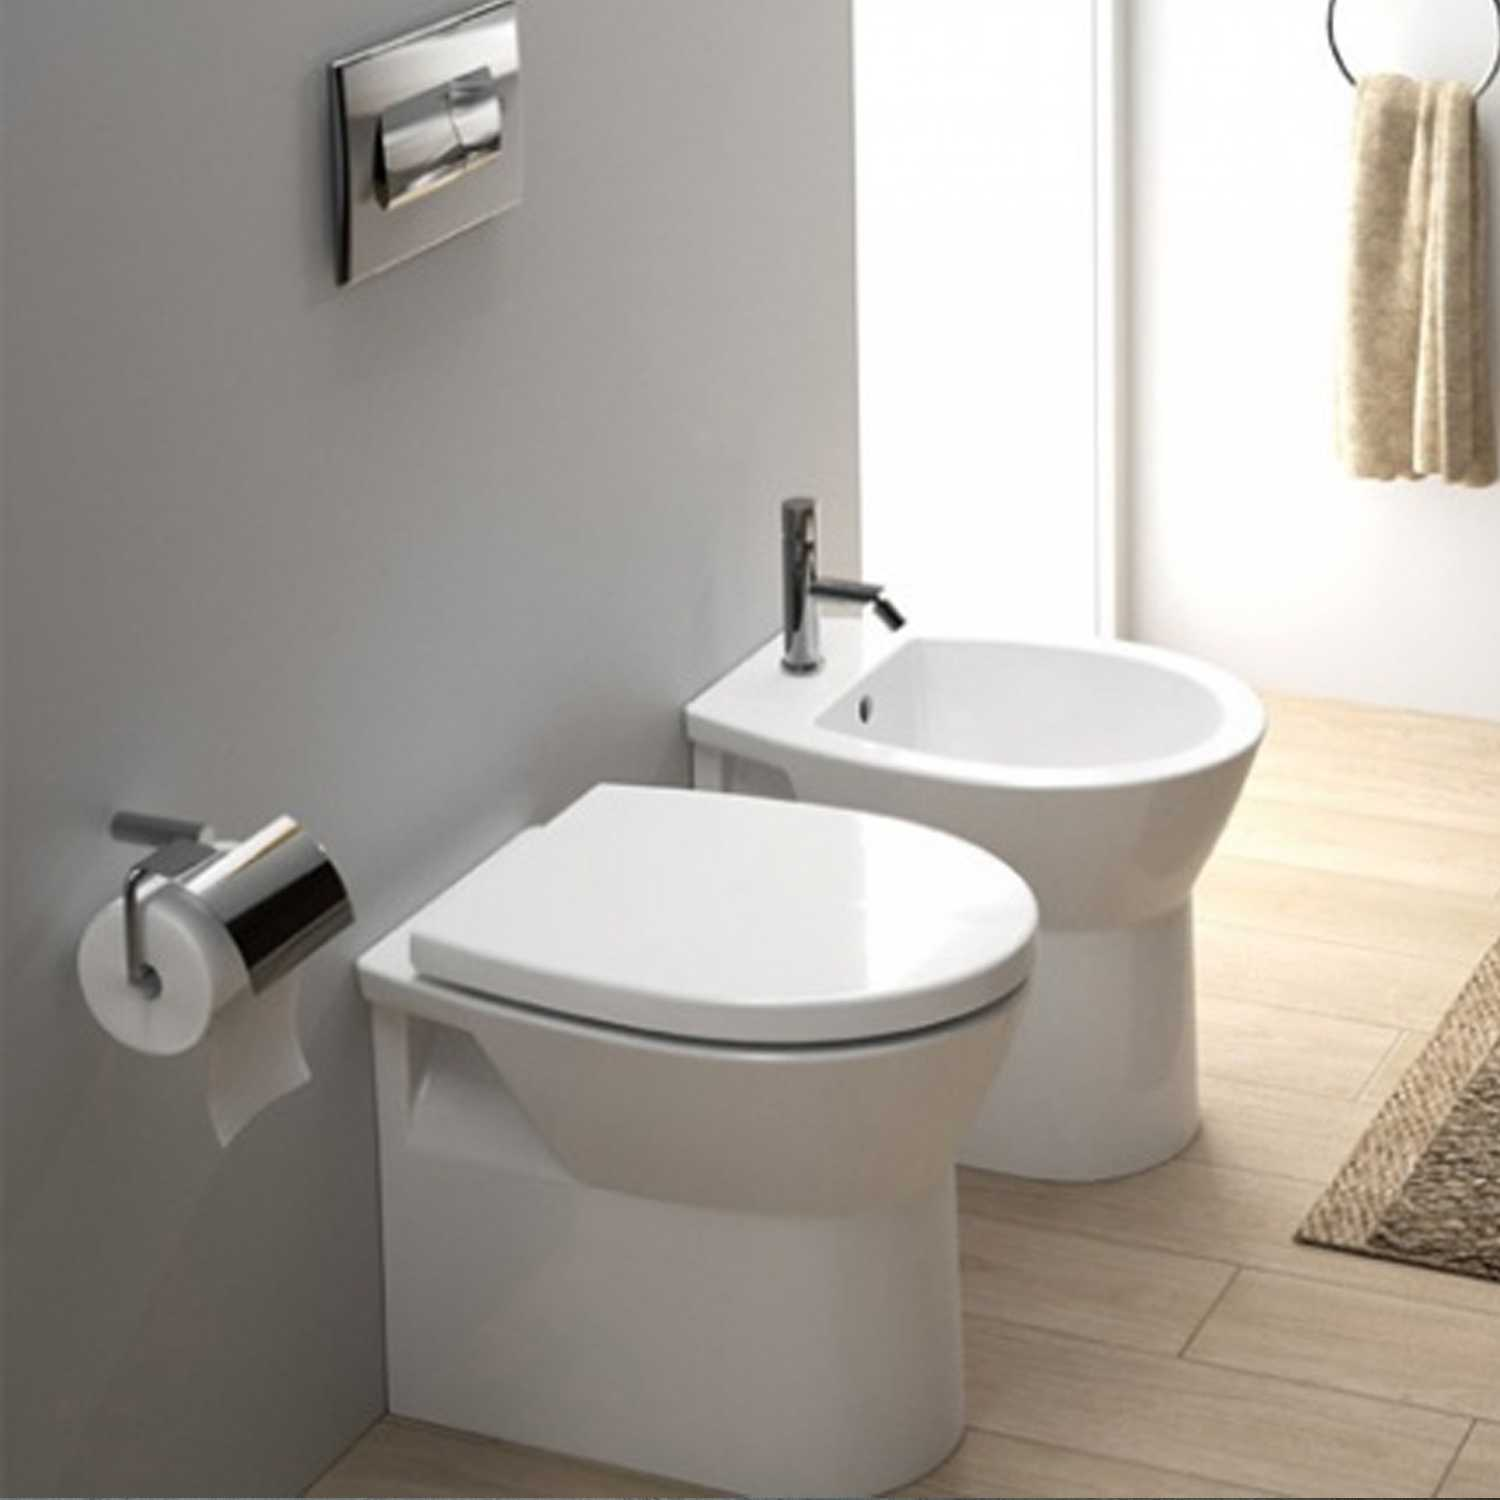 Sanitari bagno Filo Muro Sanindusa Easy Compact wc, bidet e sedile soft close